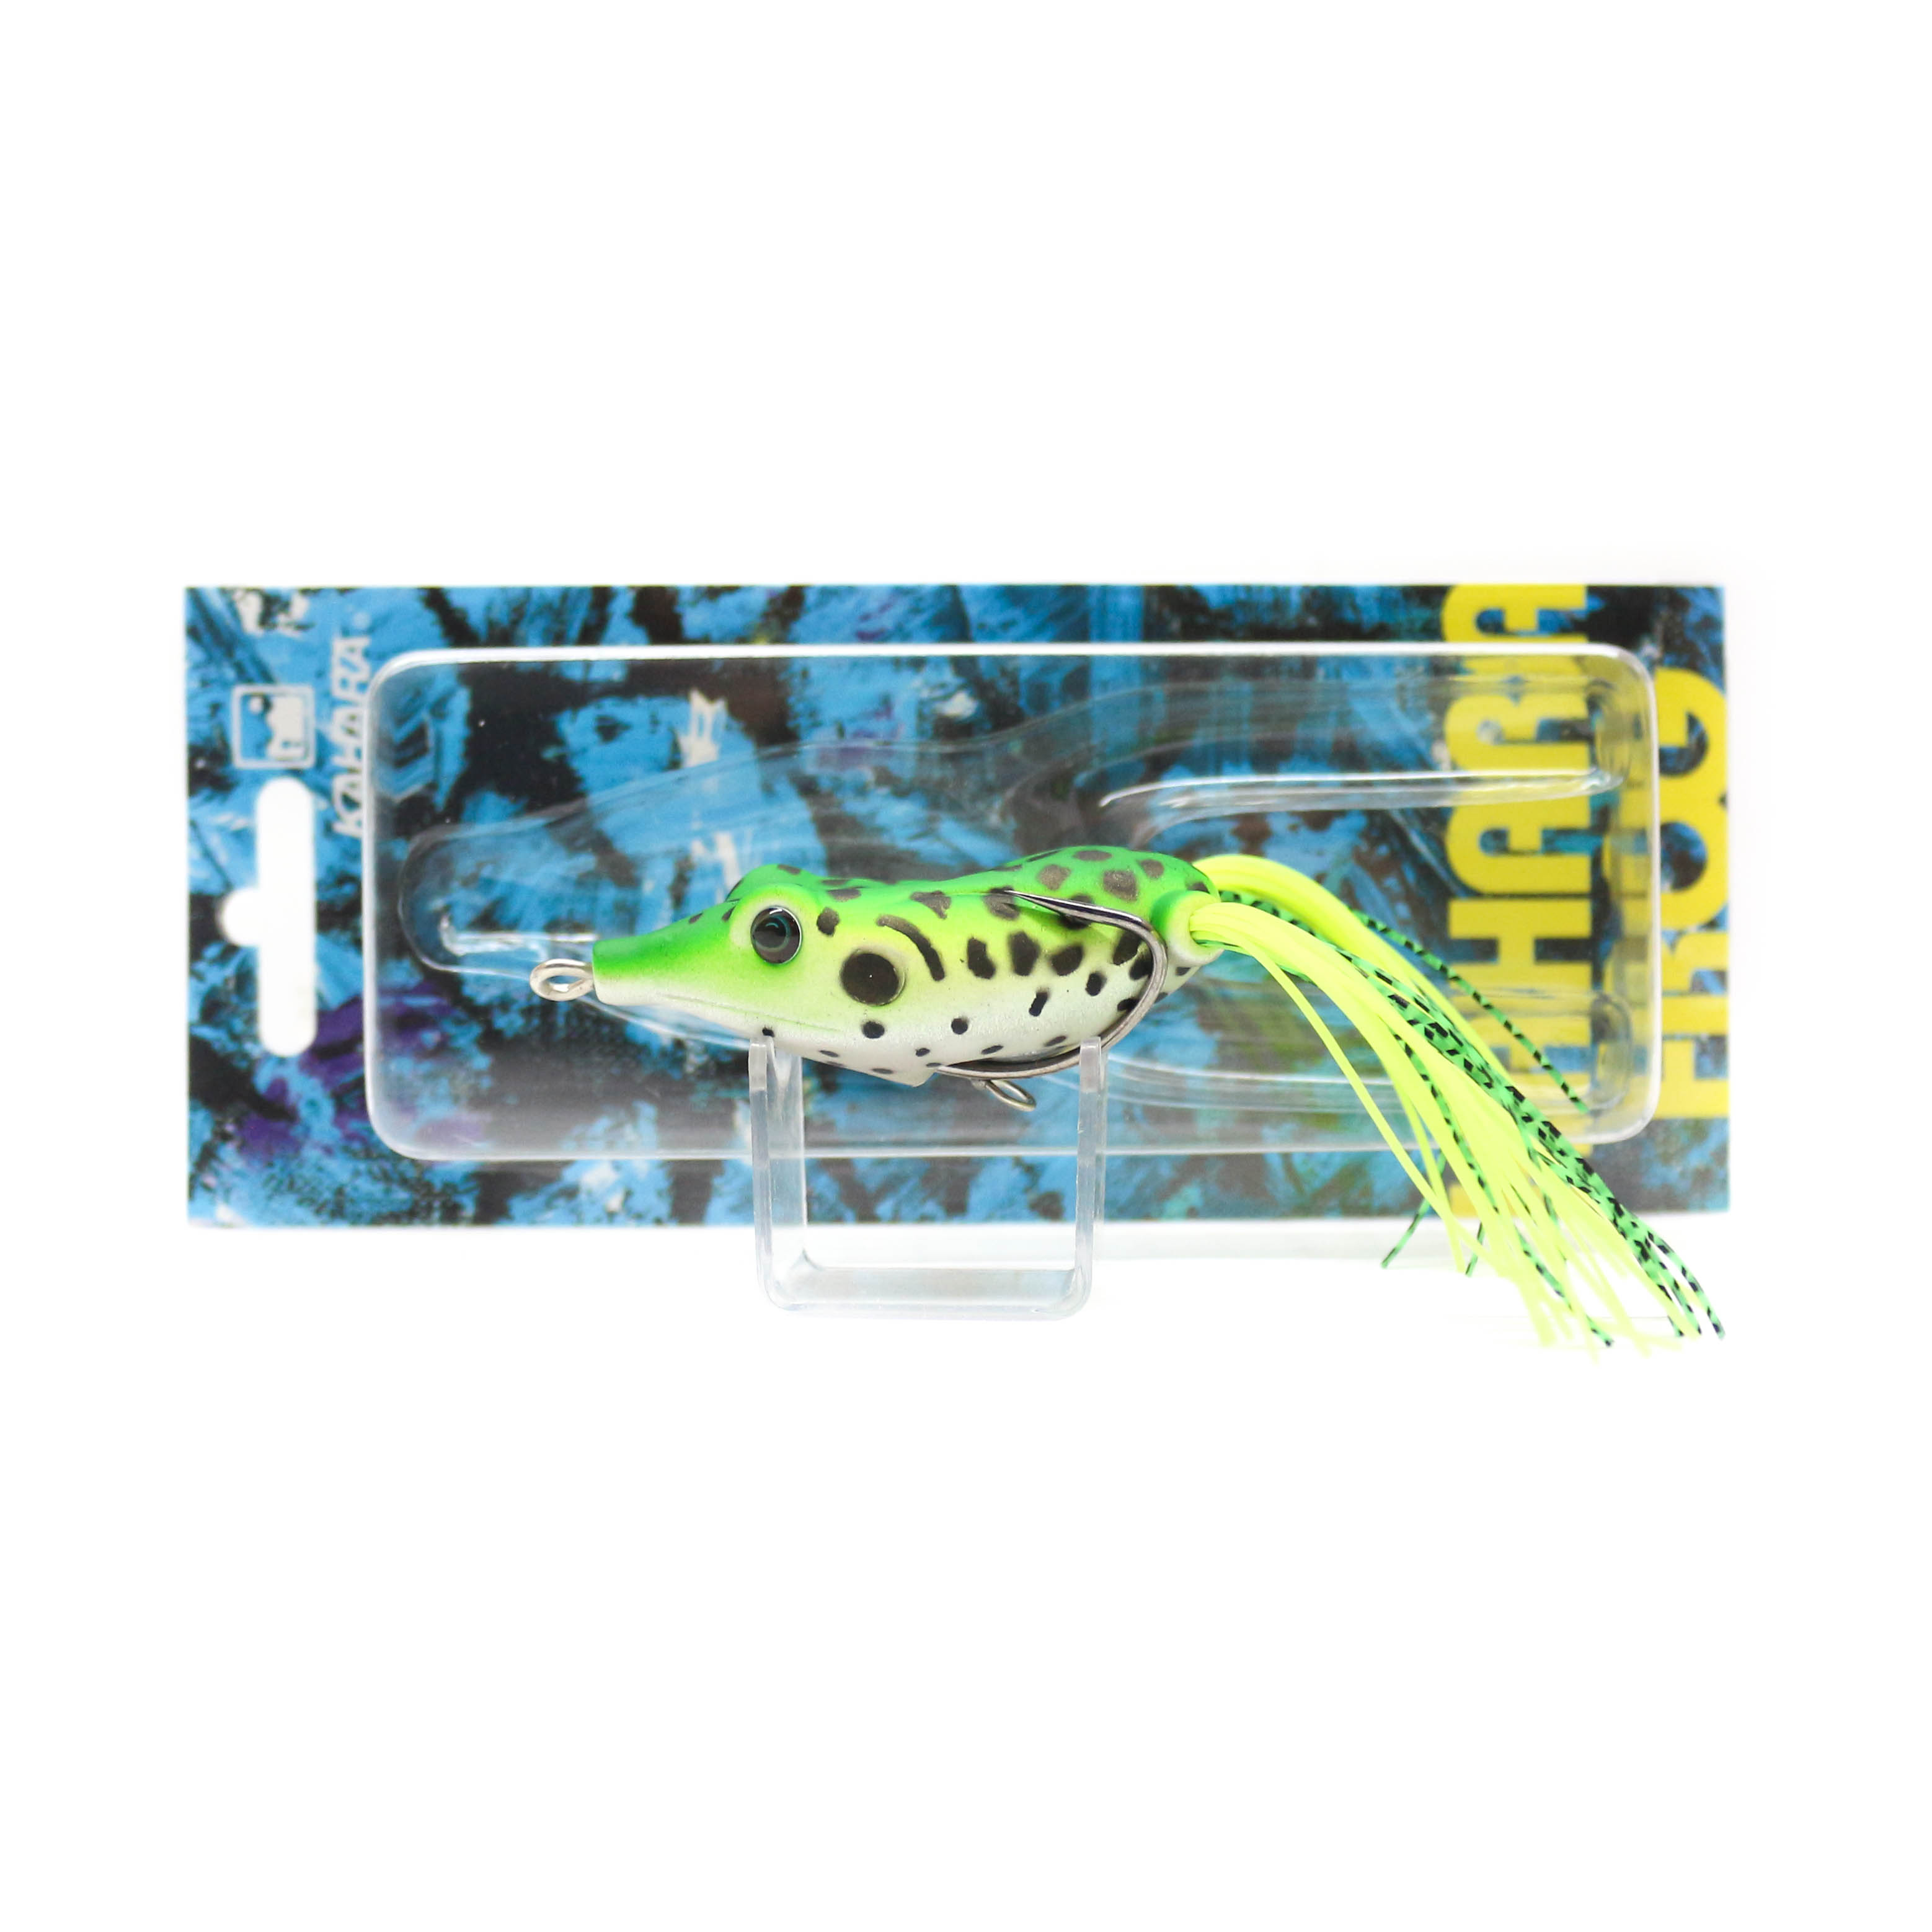 Kahara Frog Soft Plastic Floating Lure 5 (1734)